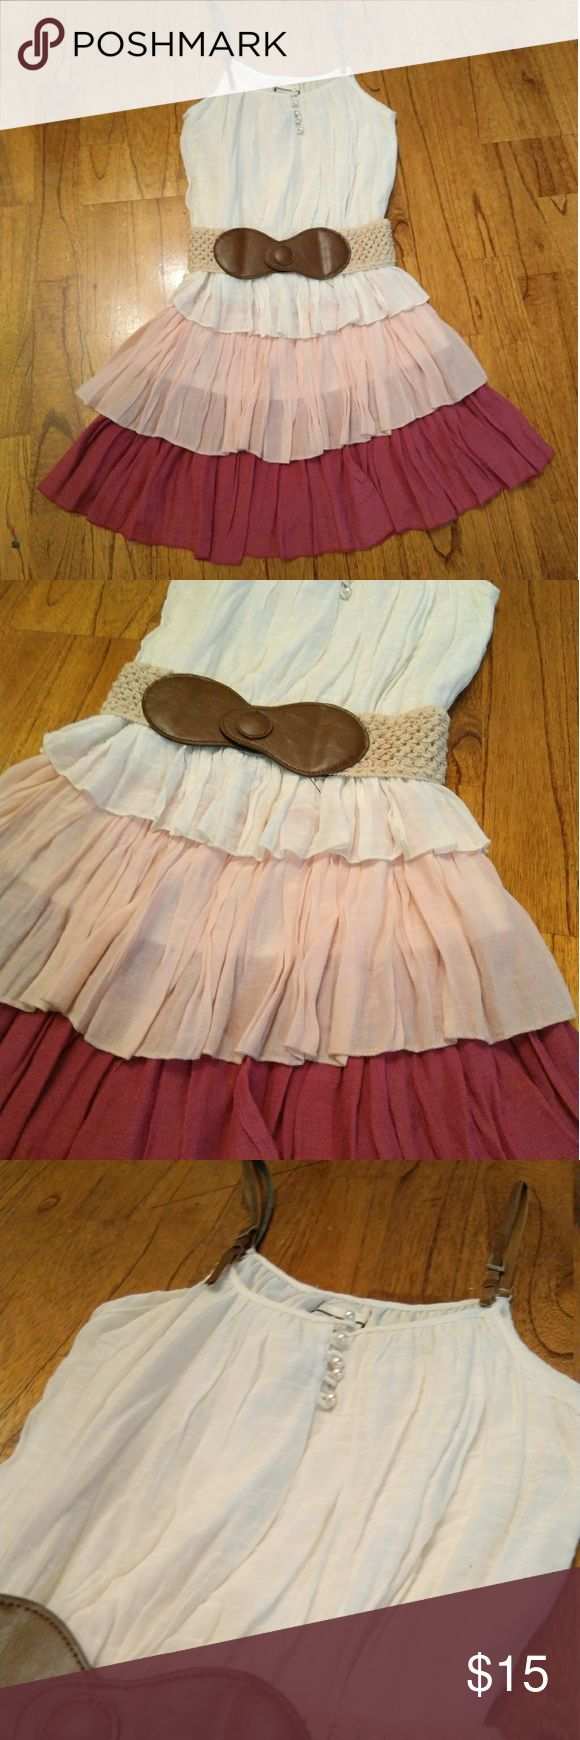 Ruffle White Pink Purple Belt Pearl Party Dress Very cute dress for any occasion like parties, dates or a girl's night out! 3 tiers of ruffles Comes with a stretch belt 5 pearl buttons in the front Adjustable straps  *One of the strings that holds the belt in place is broken. Feel free to bundle or send me an offer 579 Dresses